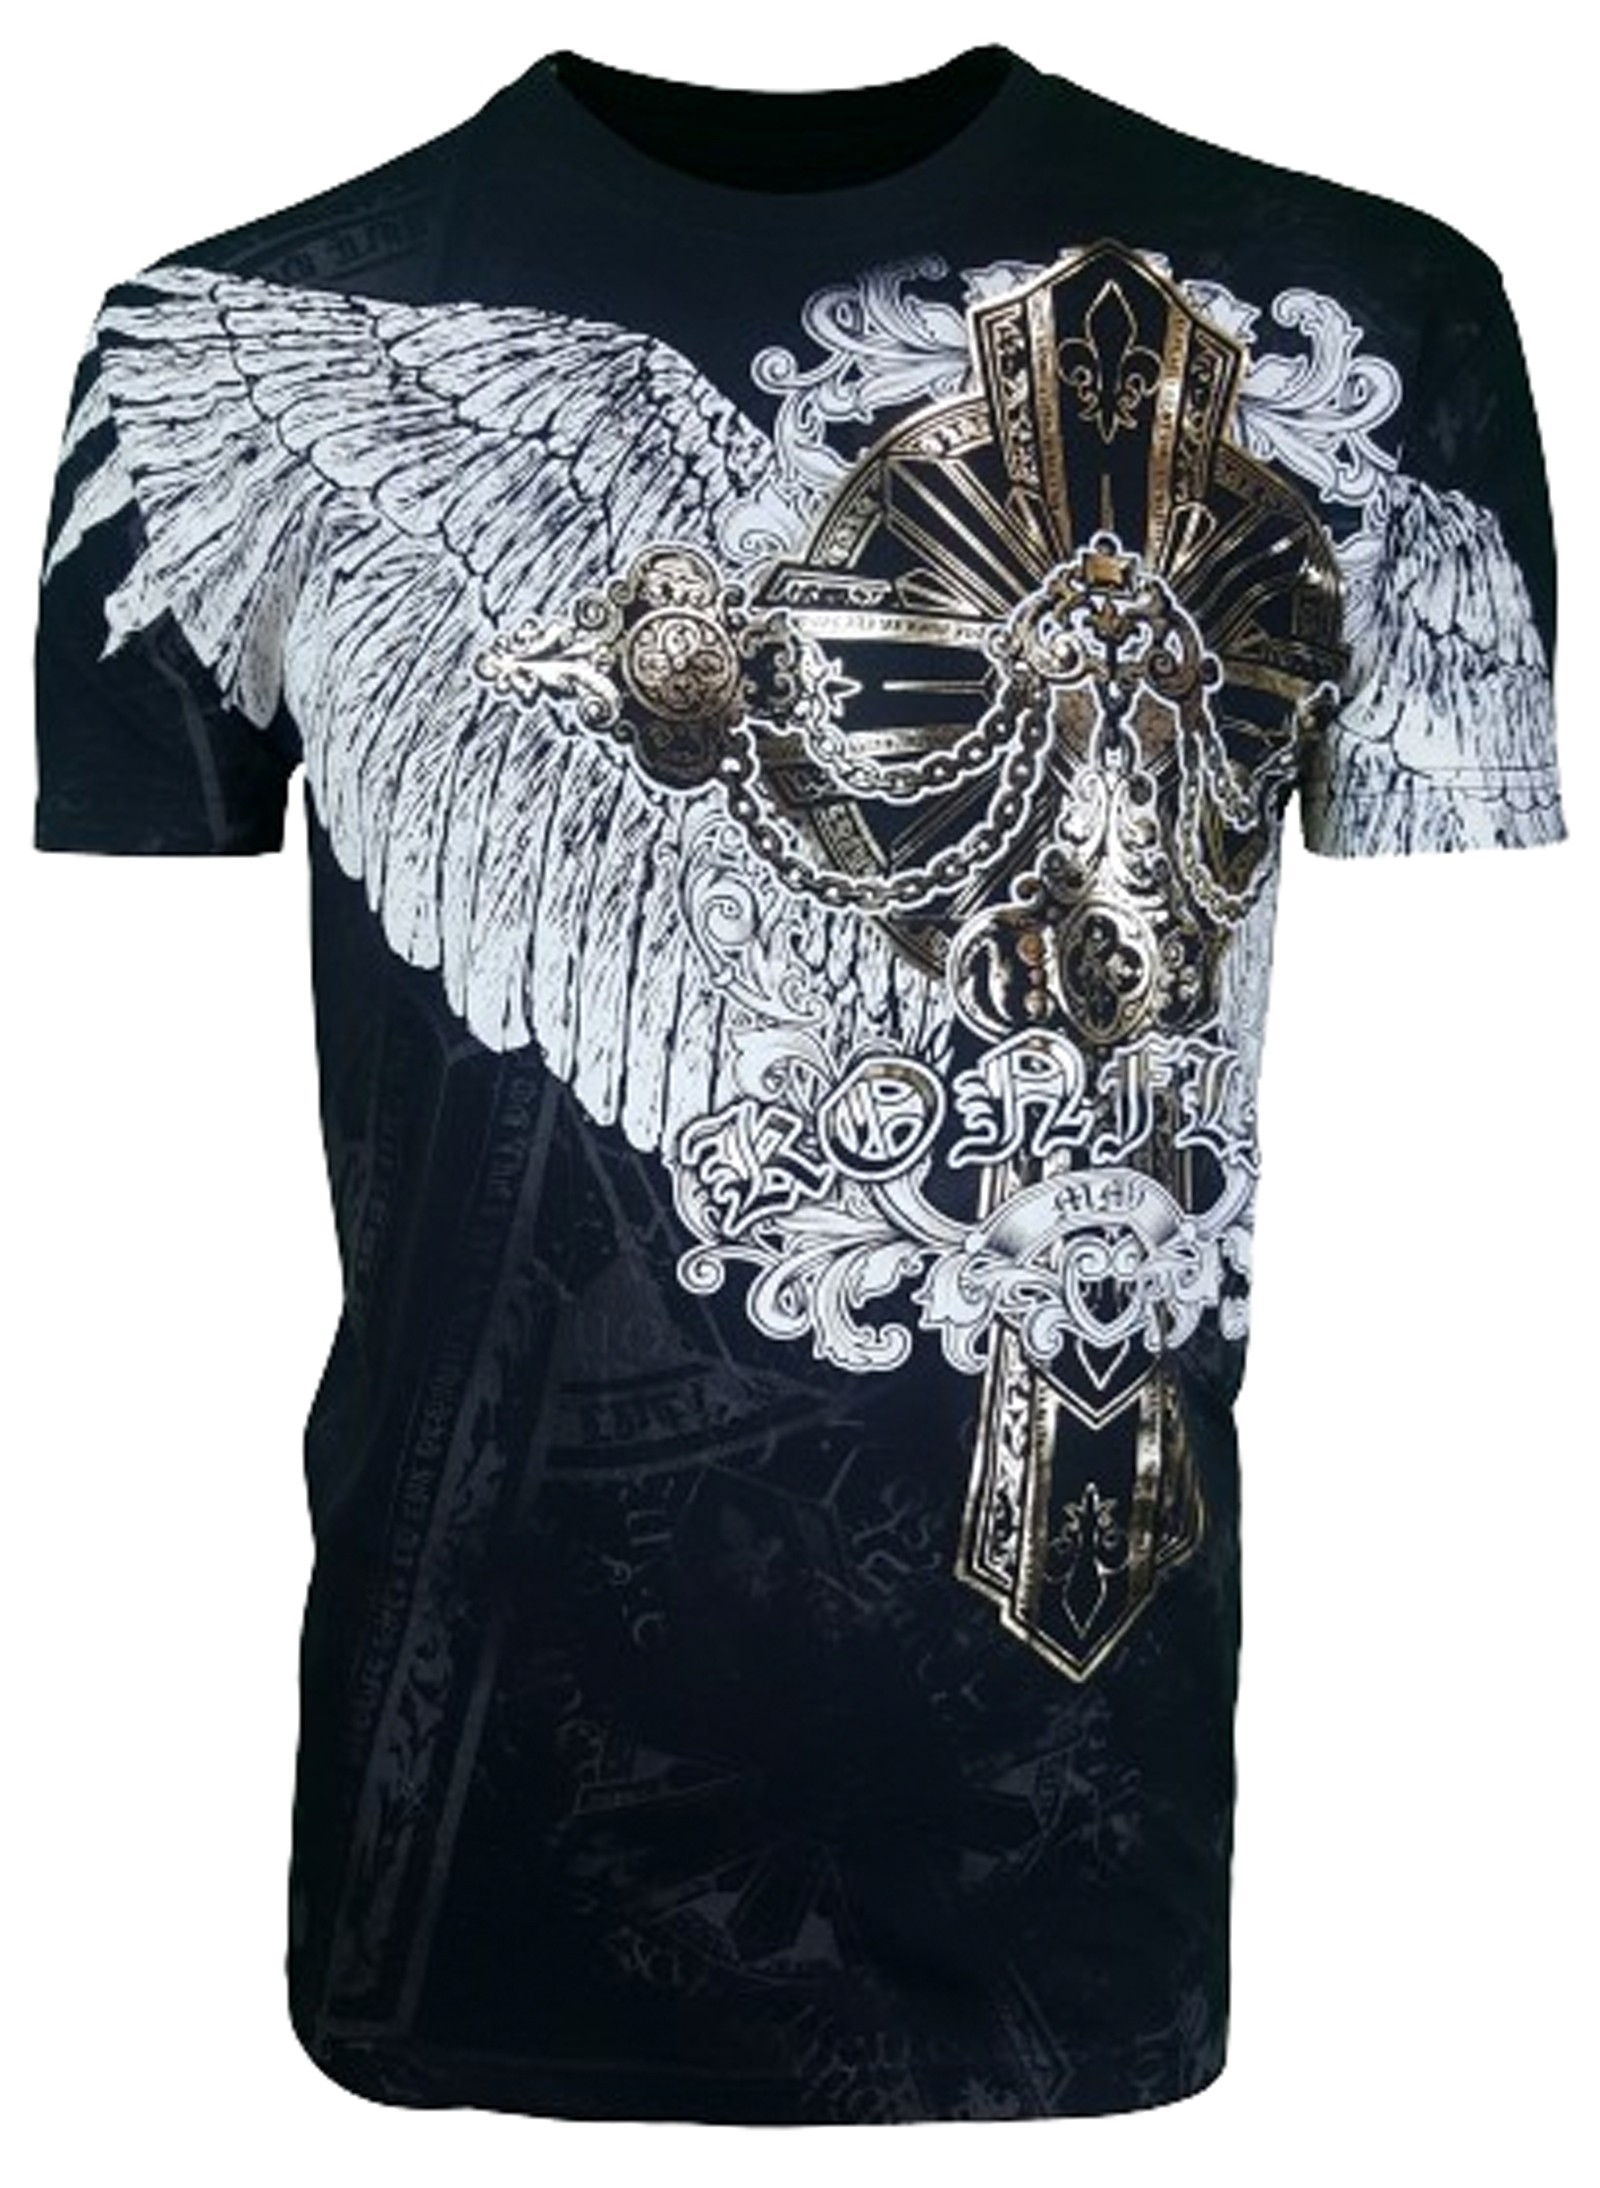 Konflic Clothing - Wings of Faith T-Shirt